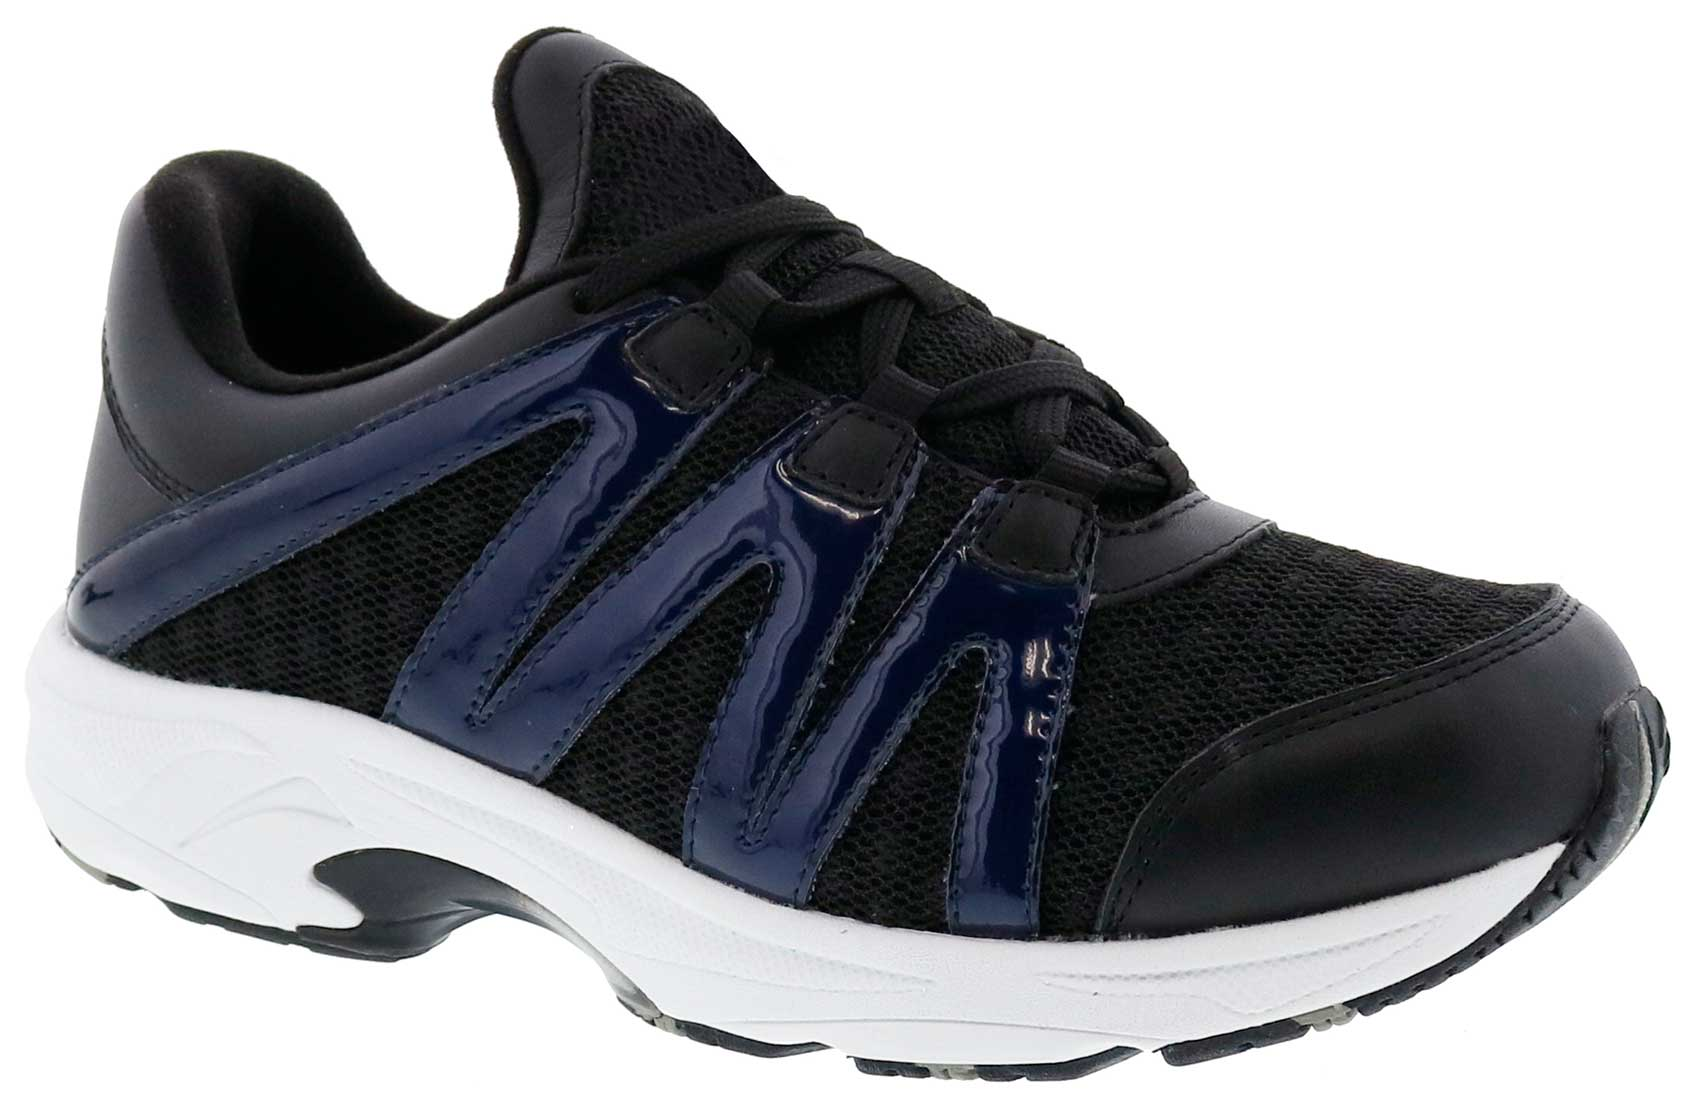 Drew Shoes - Fire 19170 - Casual, Dress, Diabetic, Therapeutic, and Comfort  Shoe